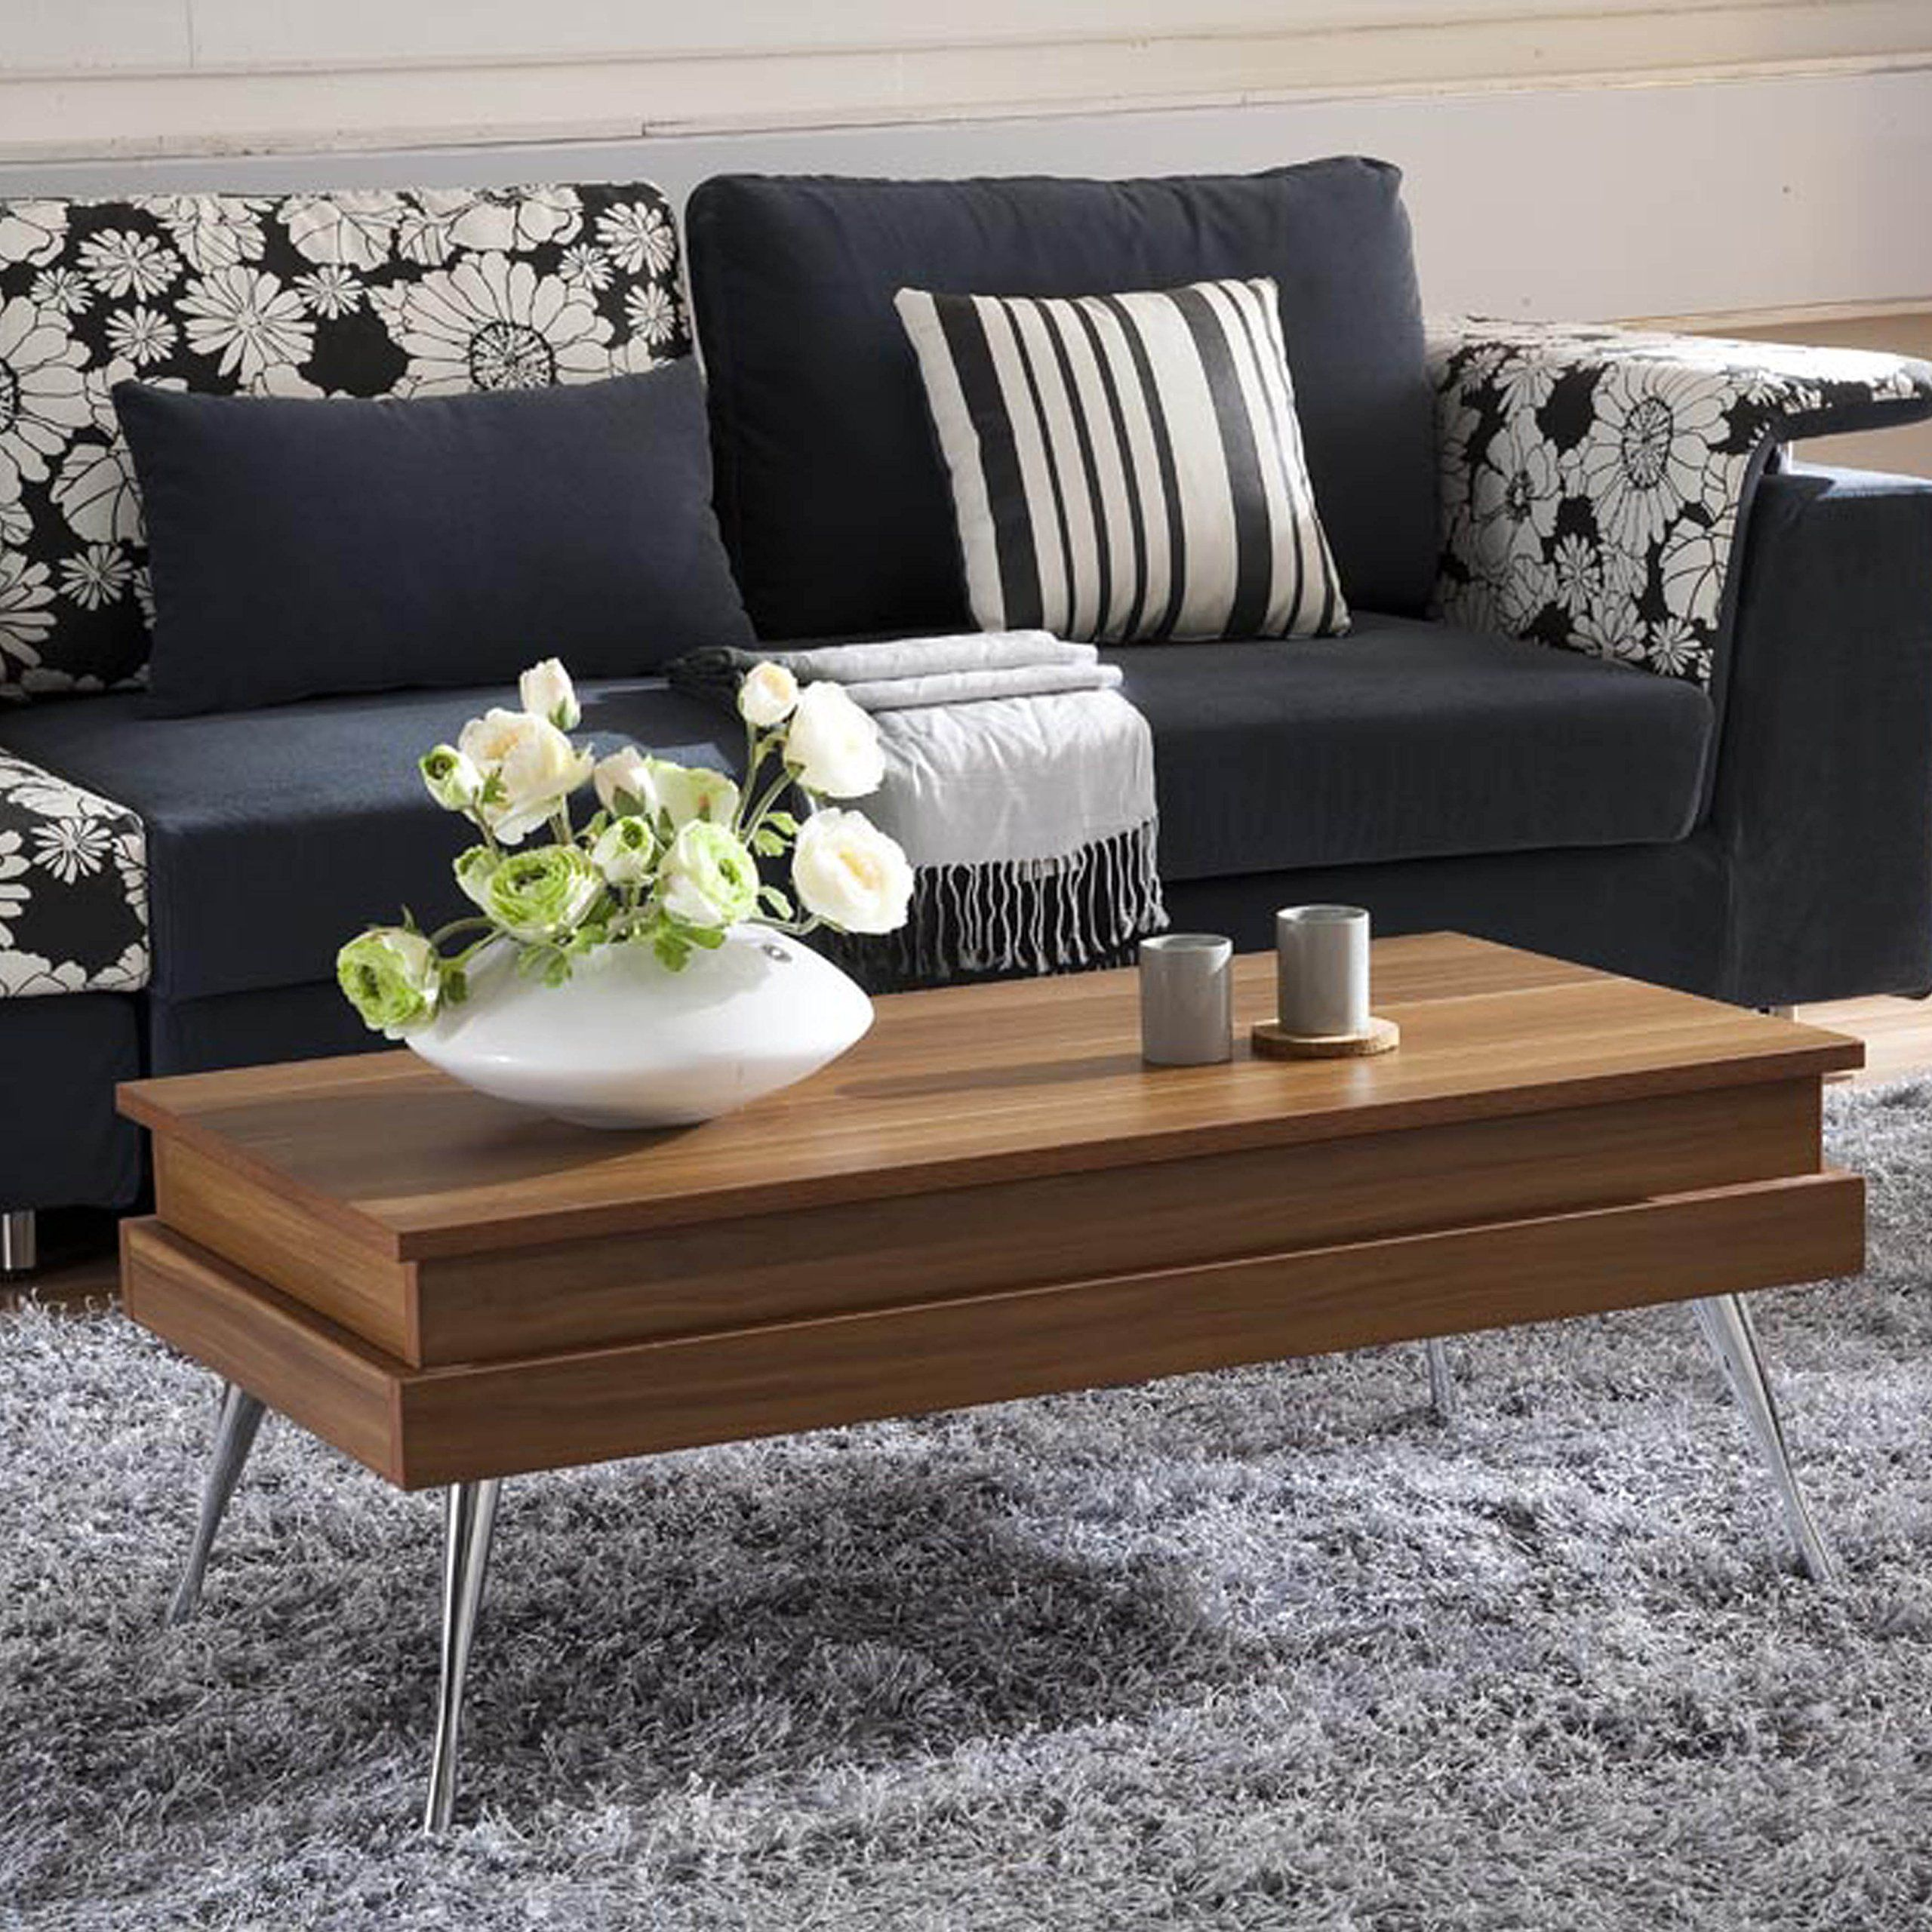 Mix Laminate Wood Chrome Legs Walnut Lifttop Rectangular Coffee Table With Hidden Storage To View Furth Coffee Table Wood Coffee Table Lift Top Coffee Table [ 2560 x 2560 Pixel ]